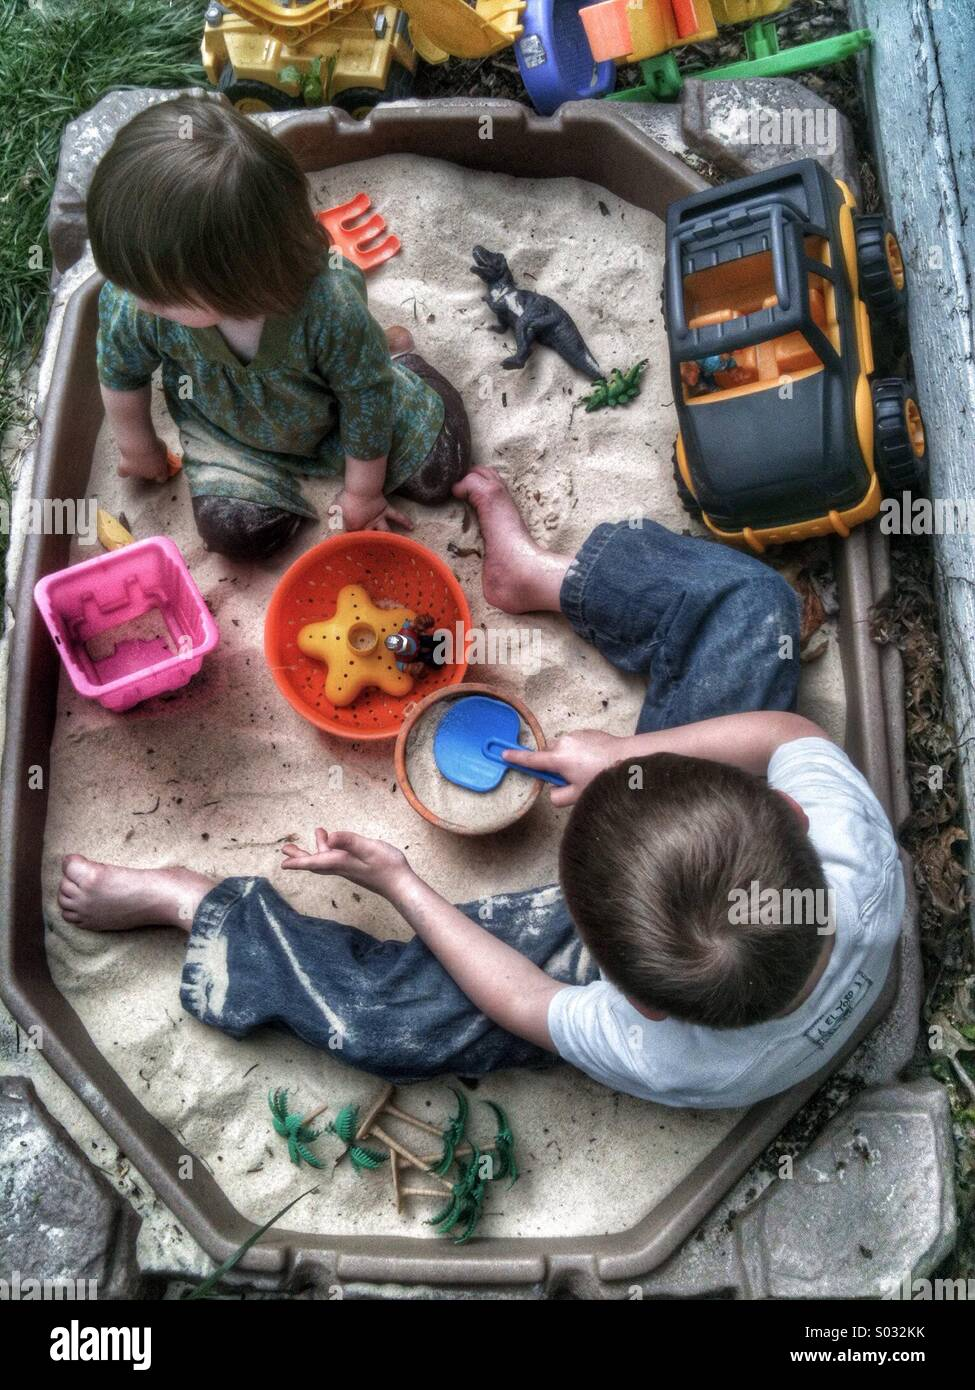 Kids in sandbox in the summer - Stock Image